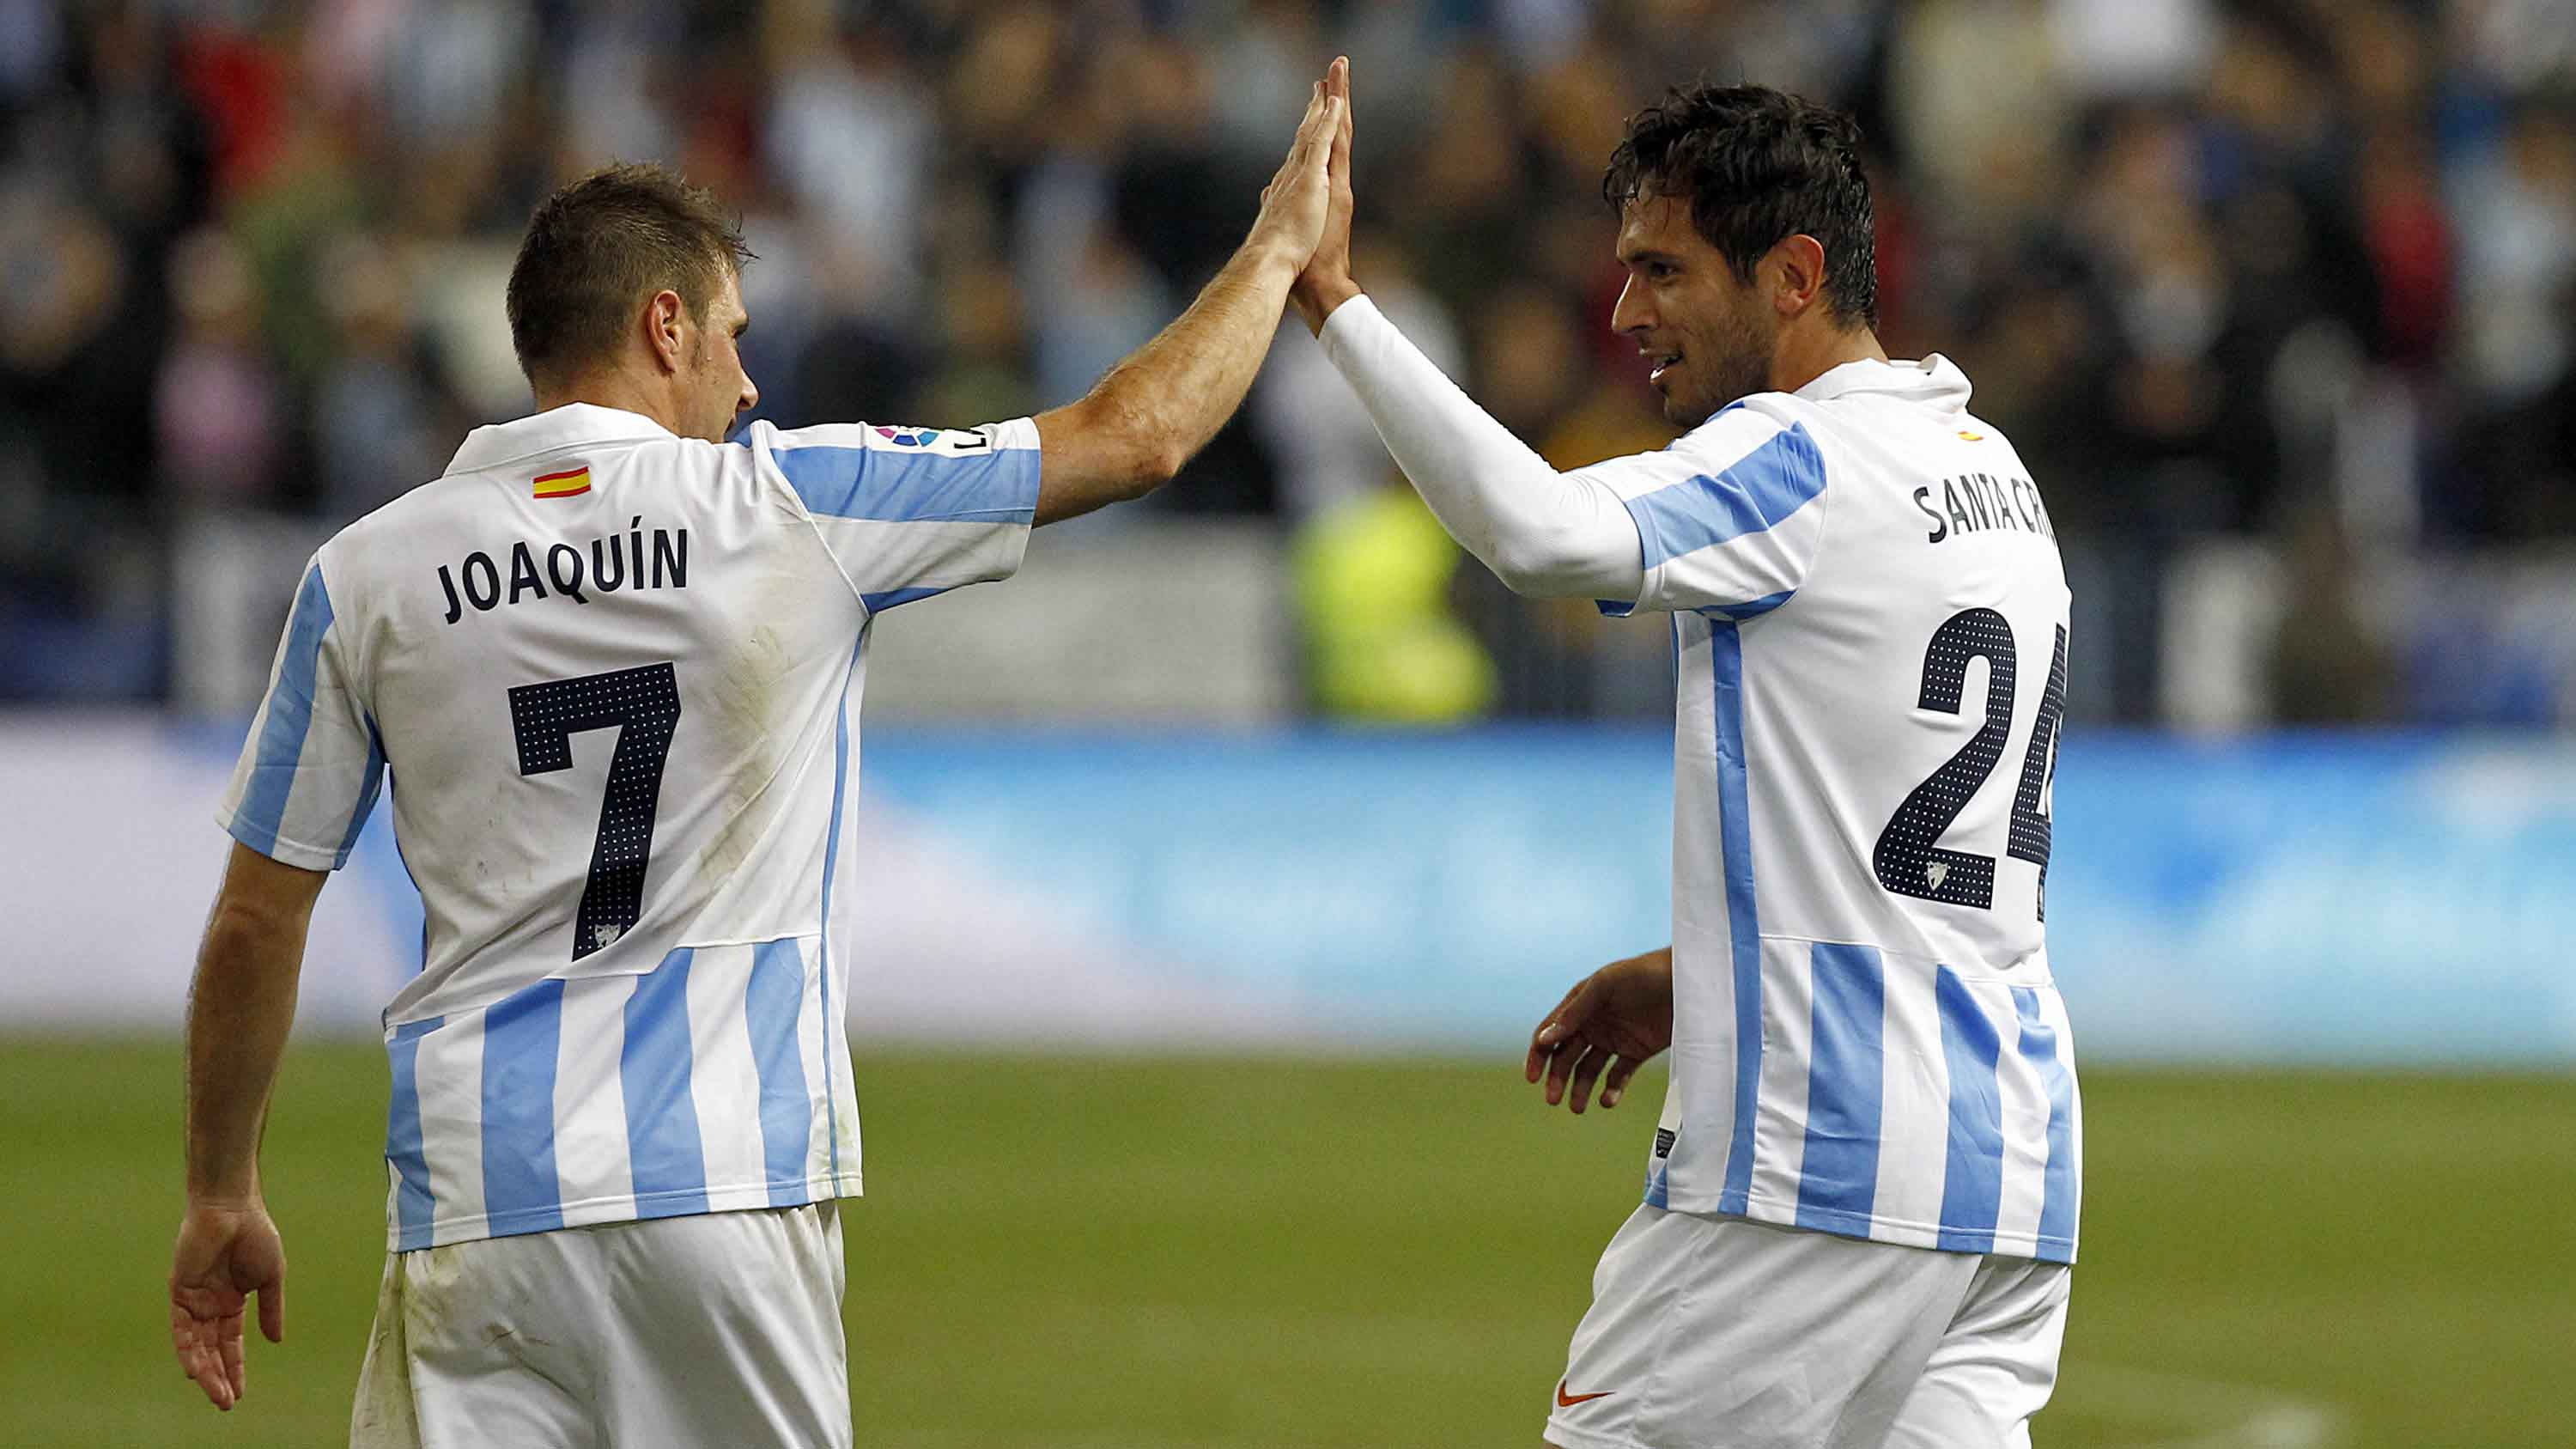 Joaquin and Santa Cruz combined twice for two goals that gave Malaga a 3 - 1 advantage